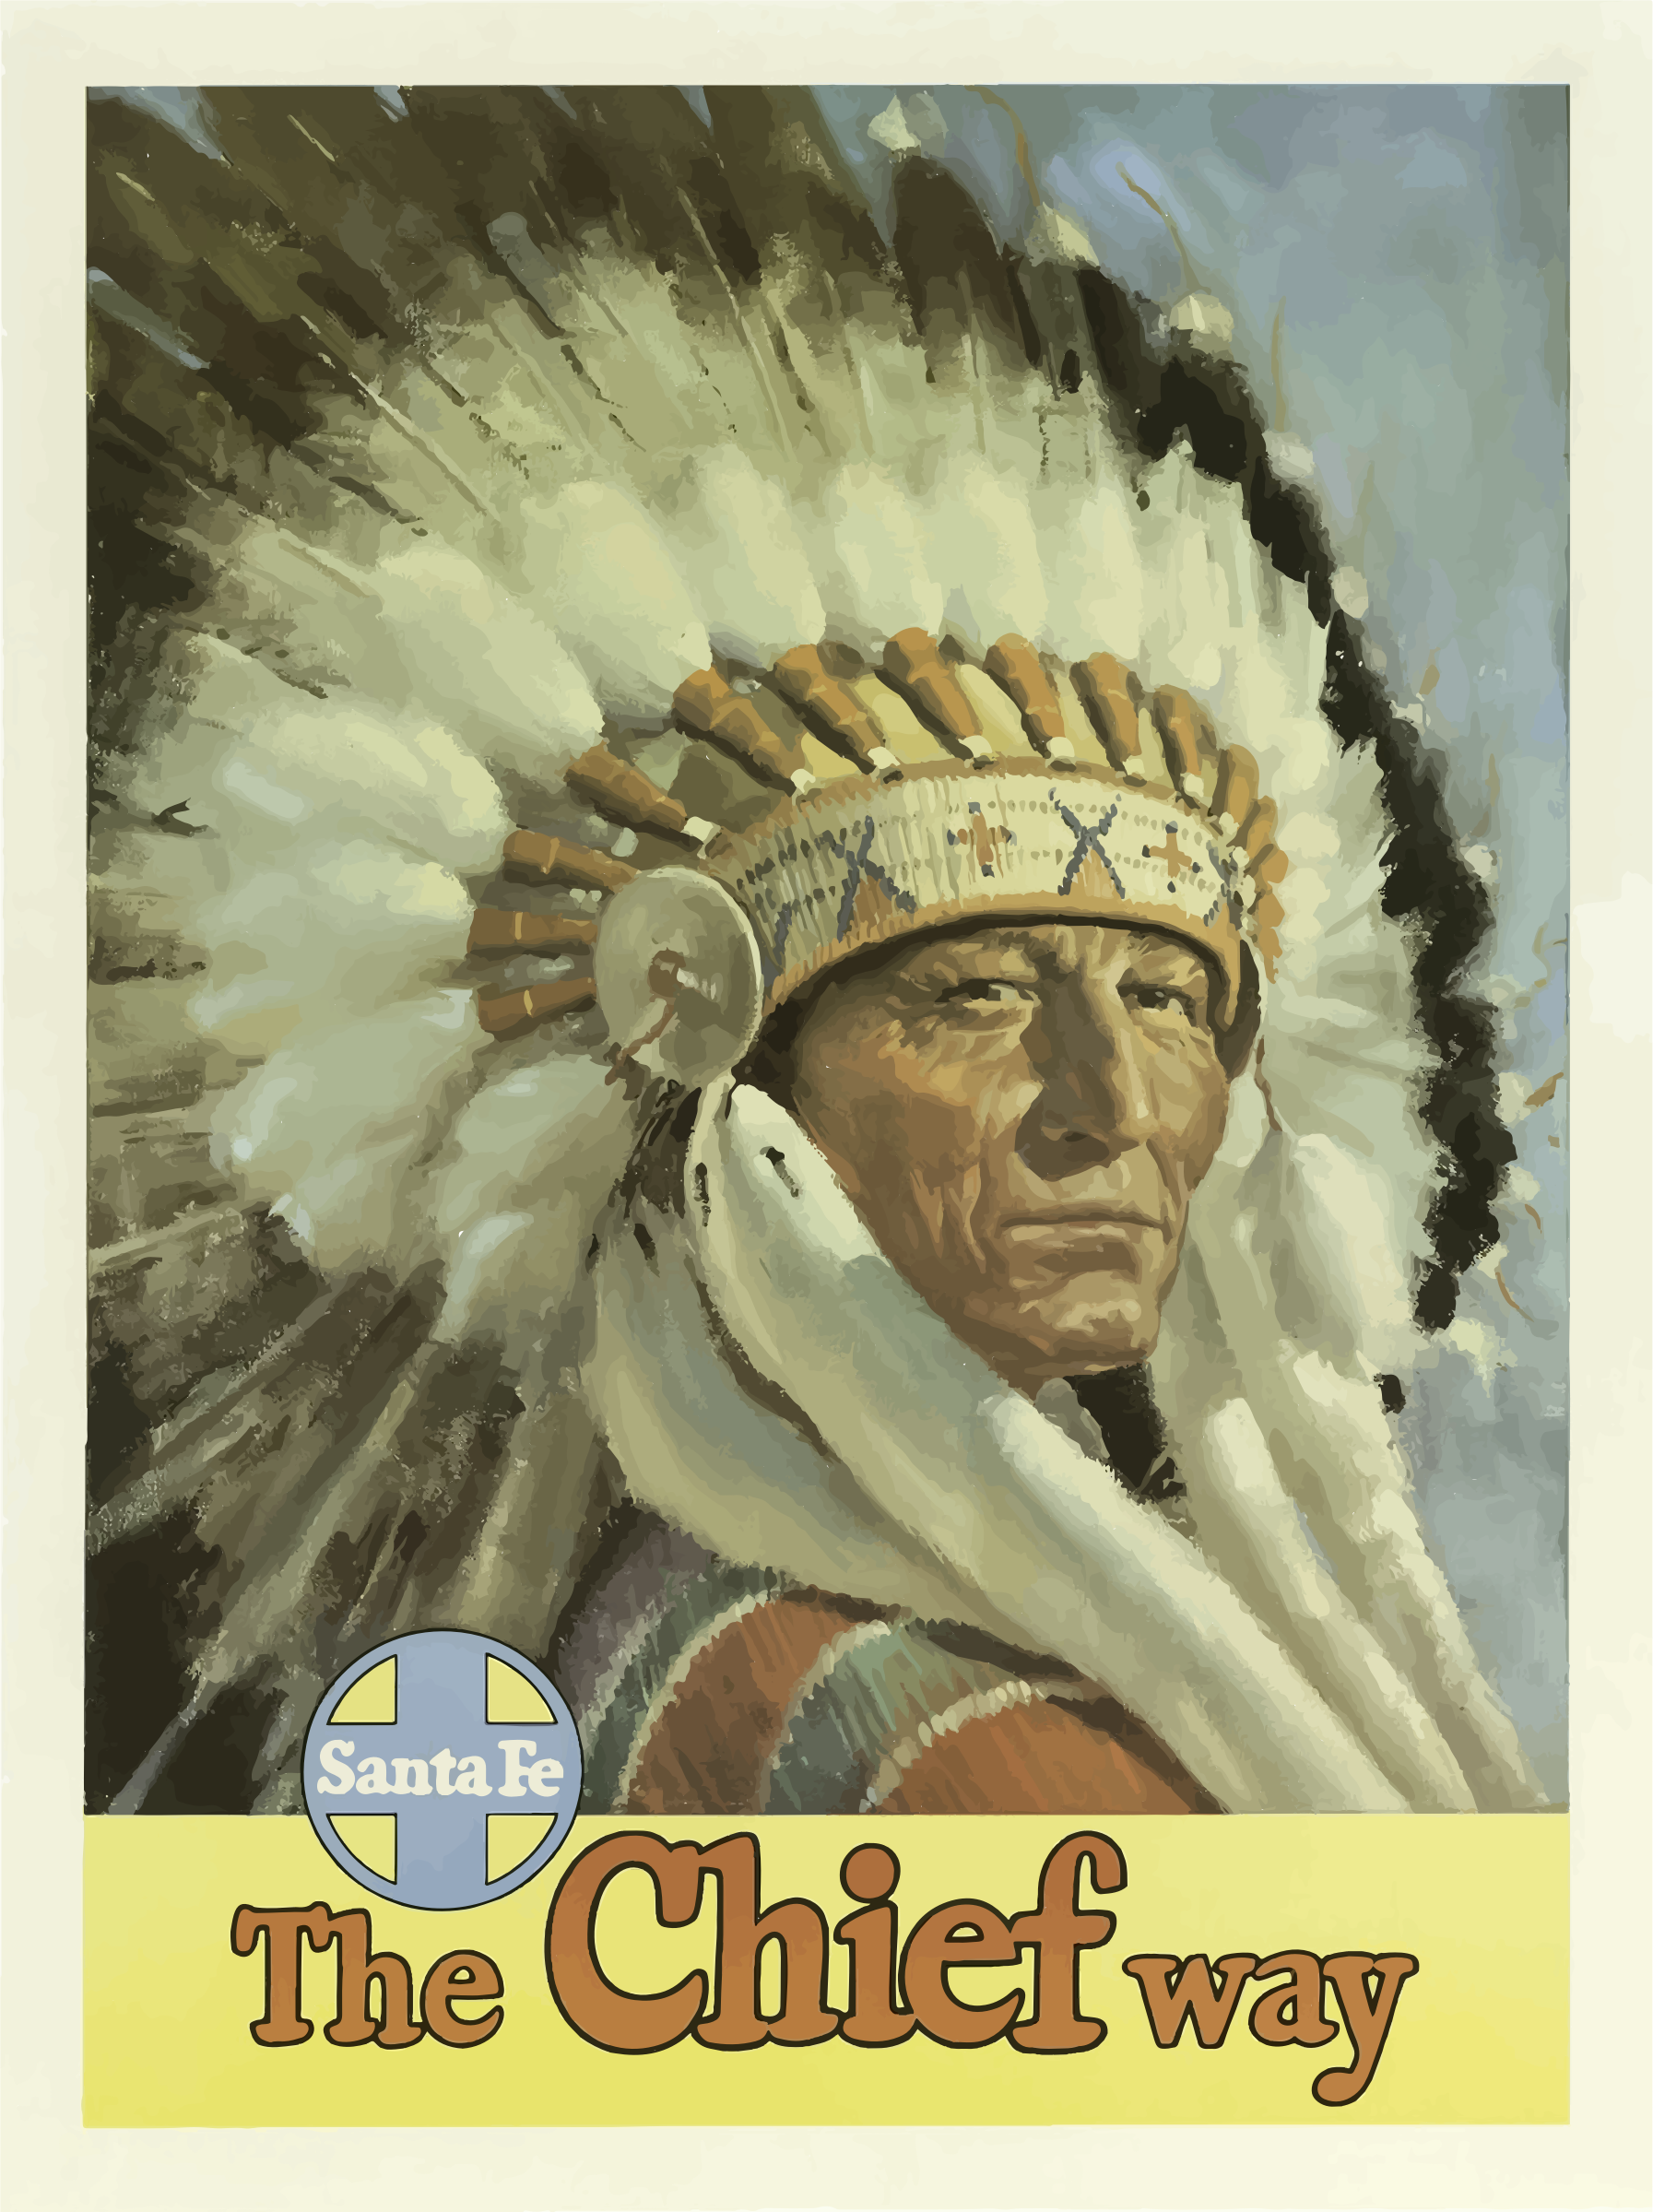 Vintage Travel Poster Santa Fe New Mexico USA by GDJ